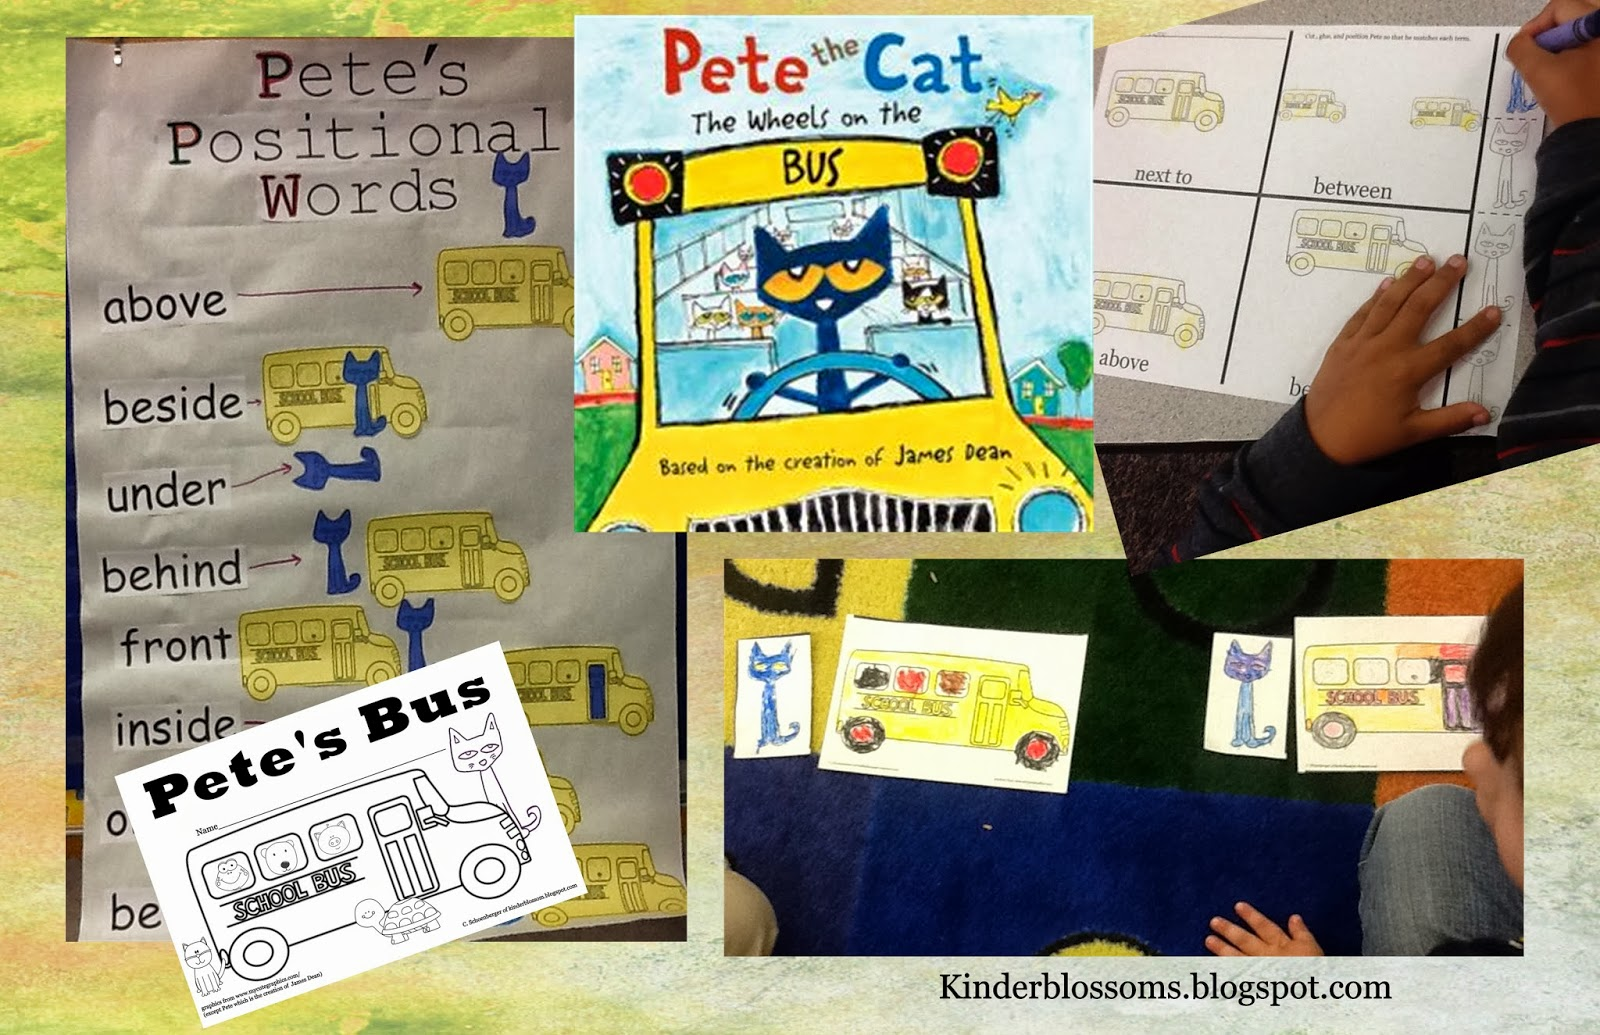 Christina S Kinder Blossoms Positional Words With Pete The Cat The Wheels On The Bus